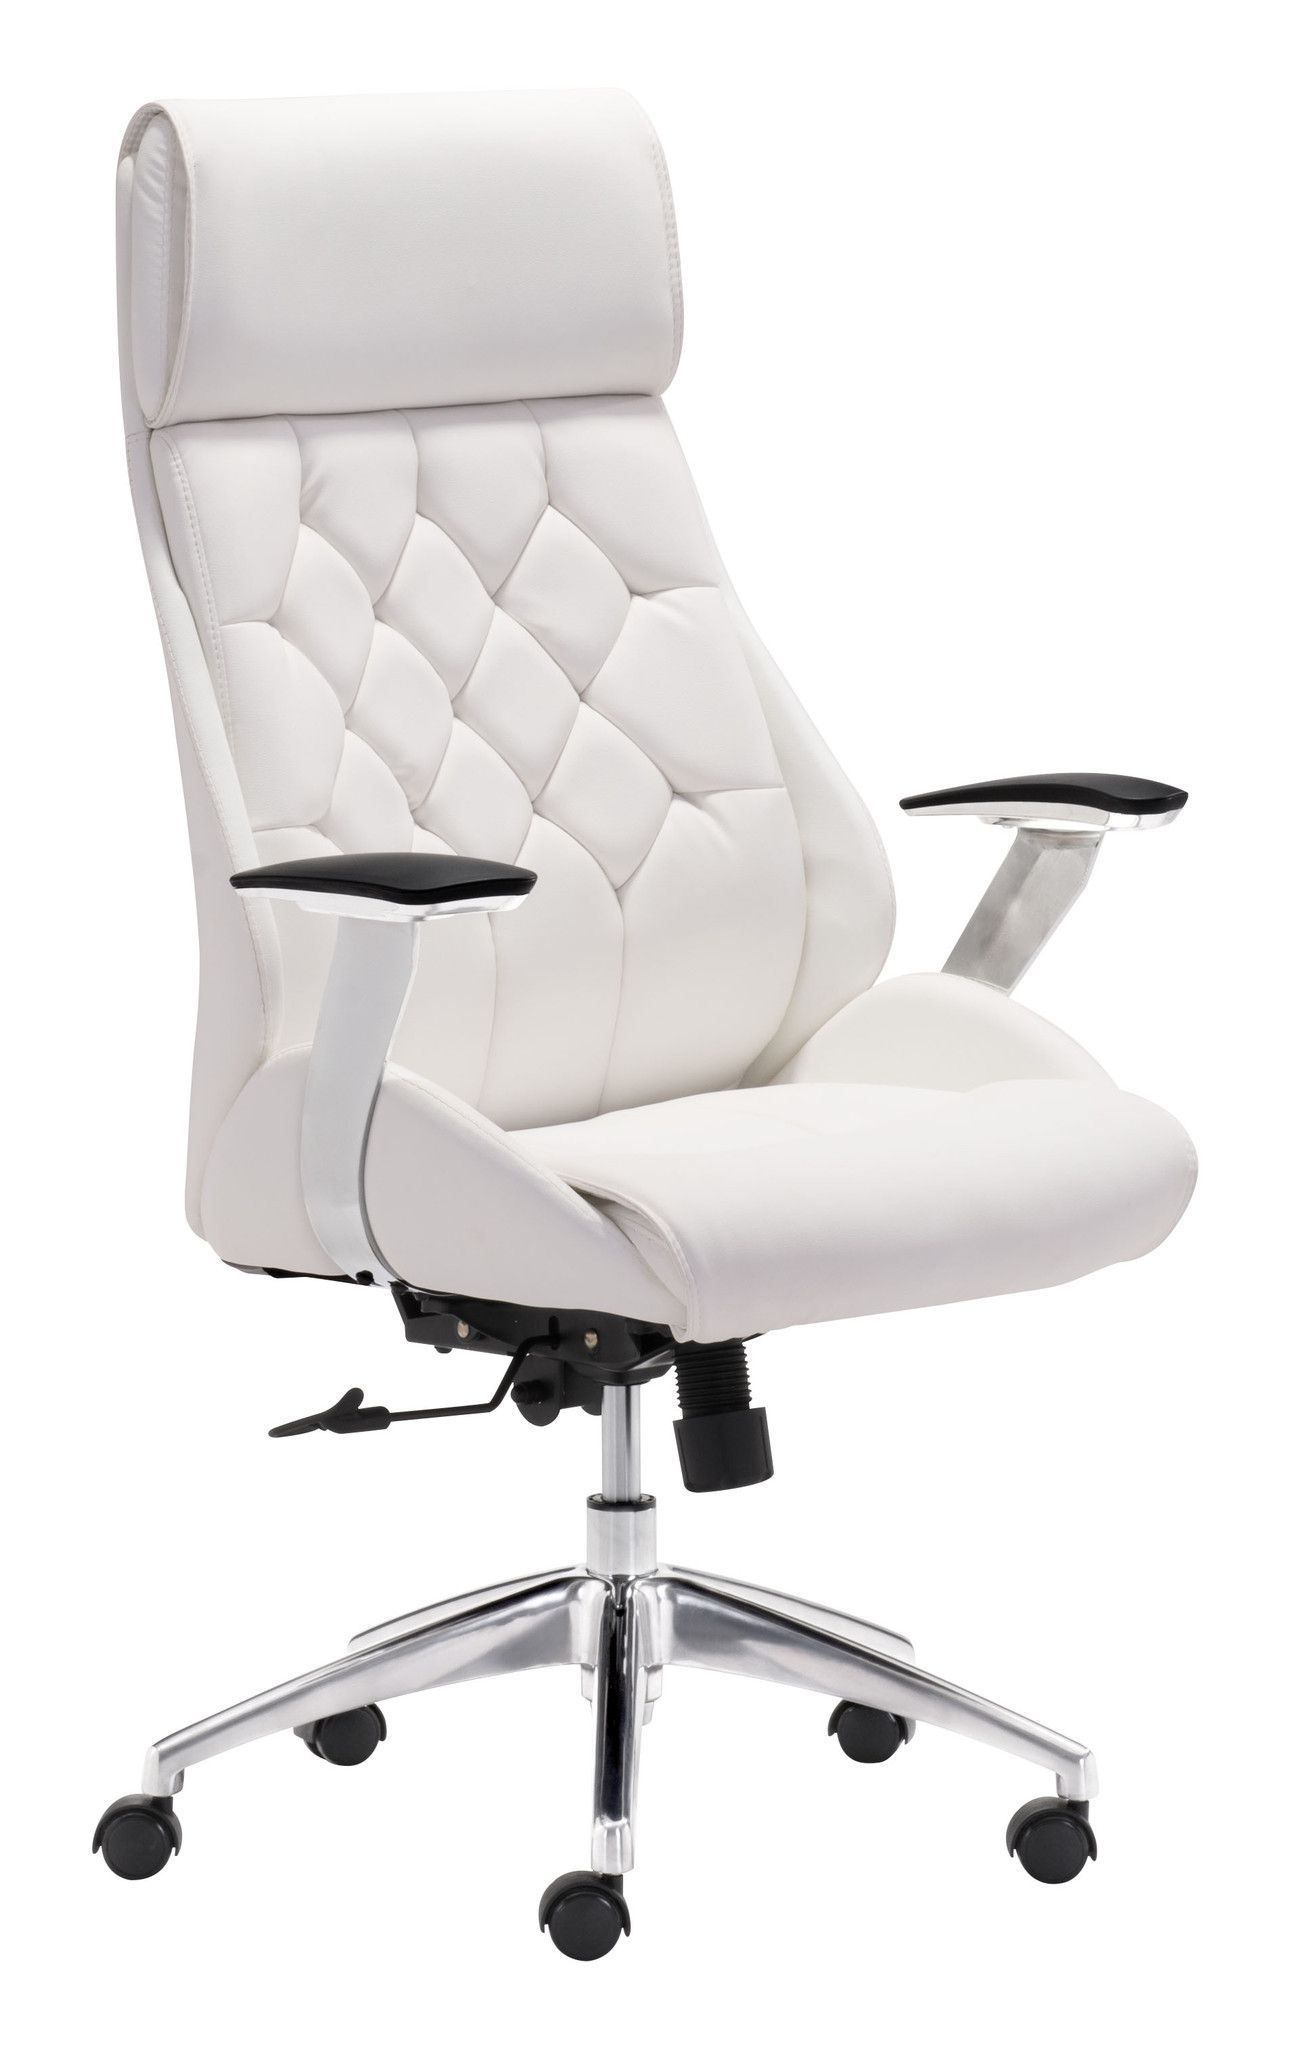 Narcissist fice Chair White